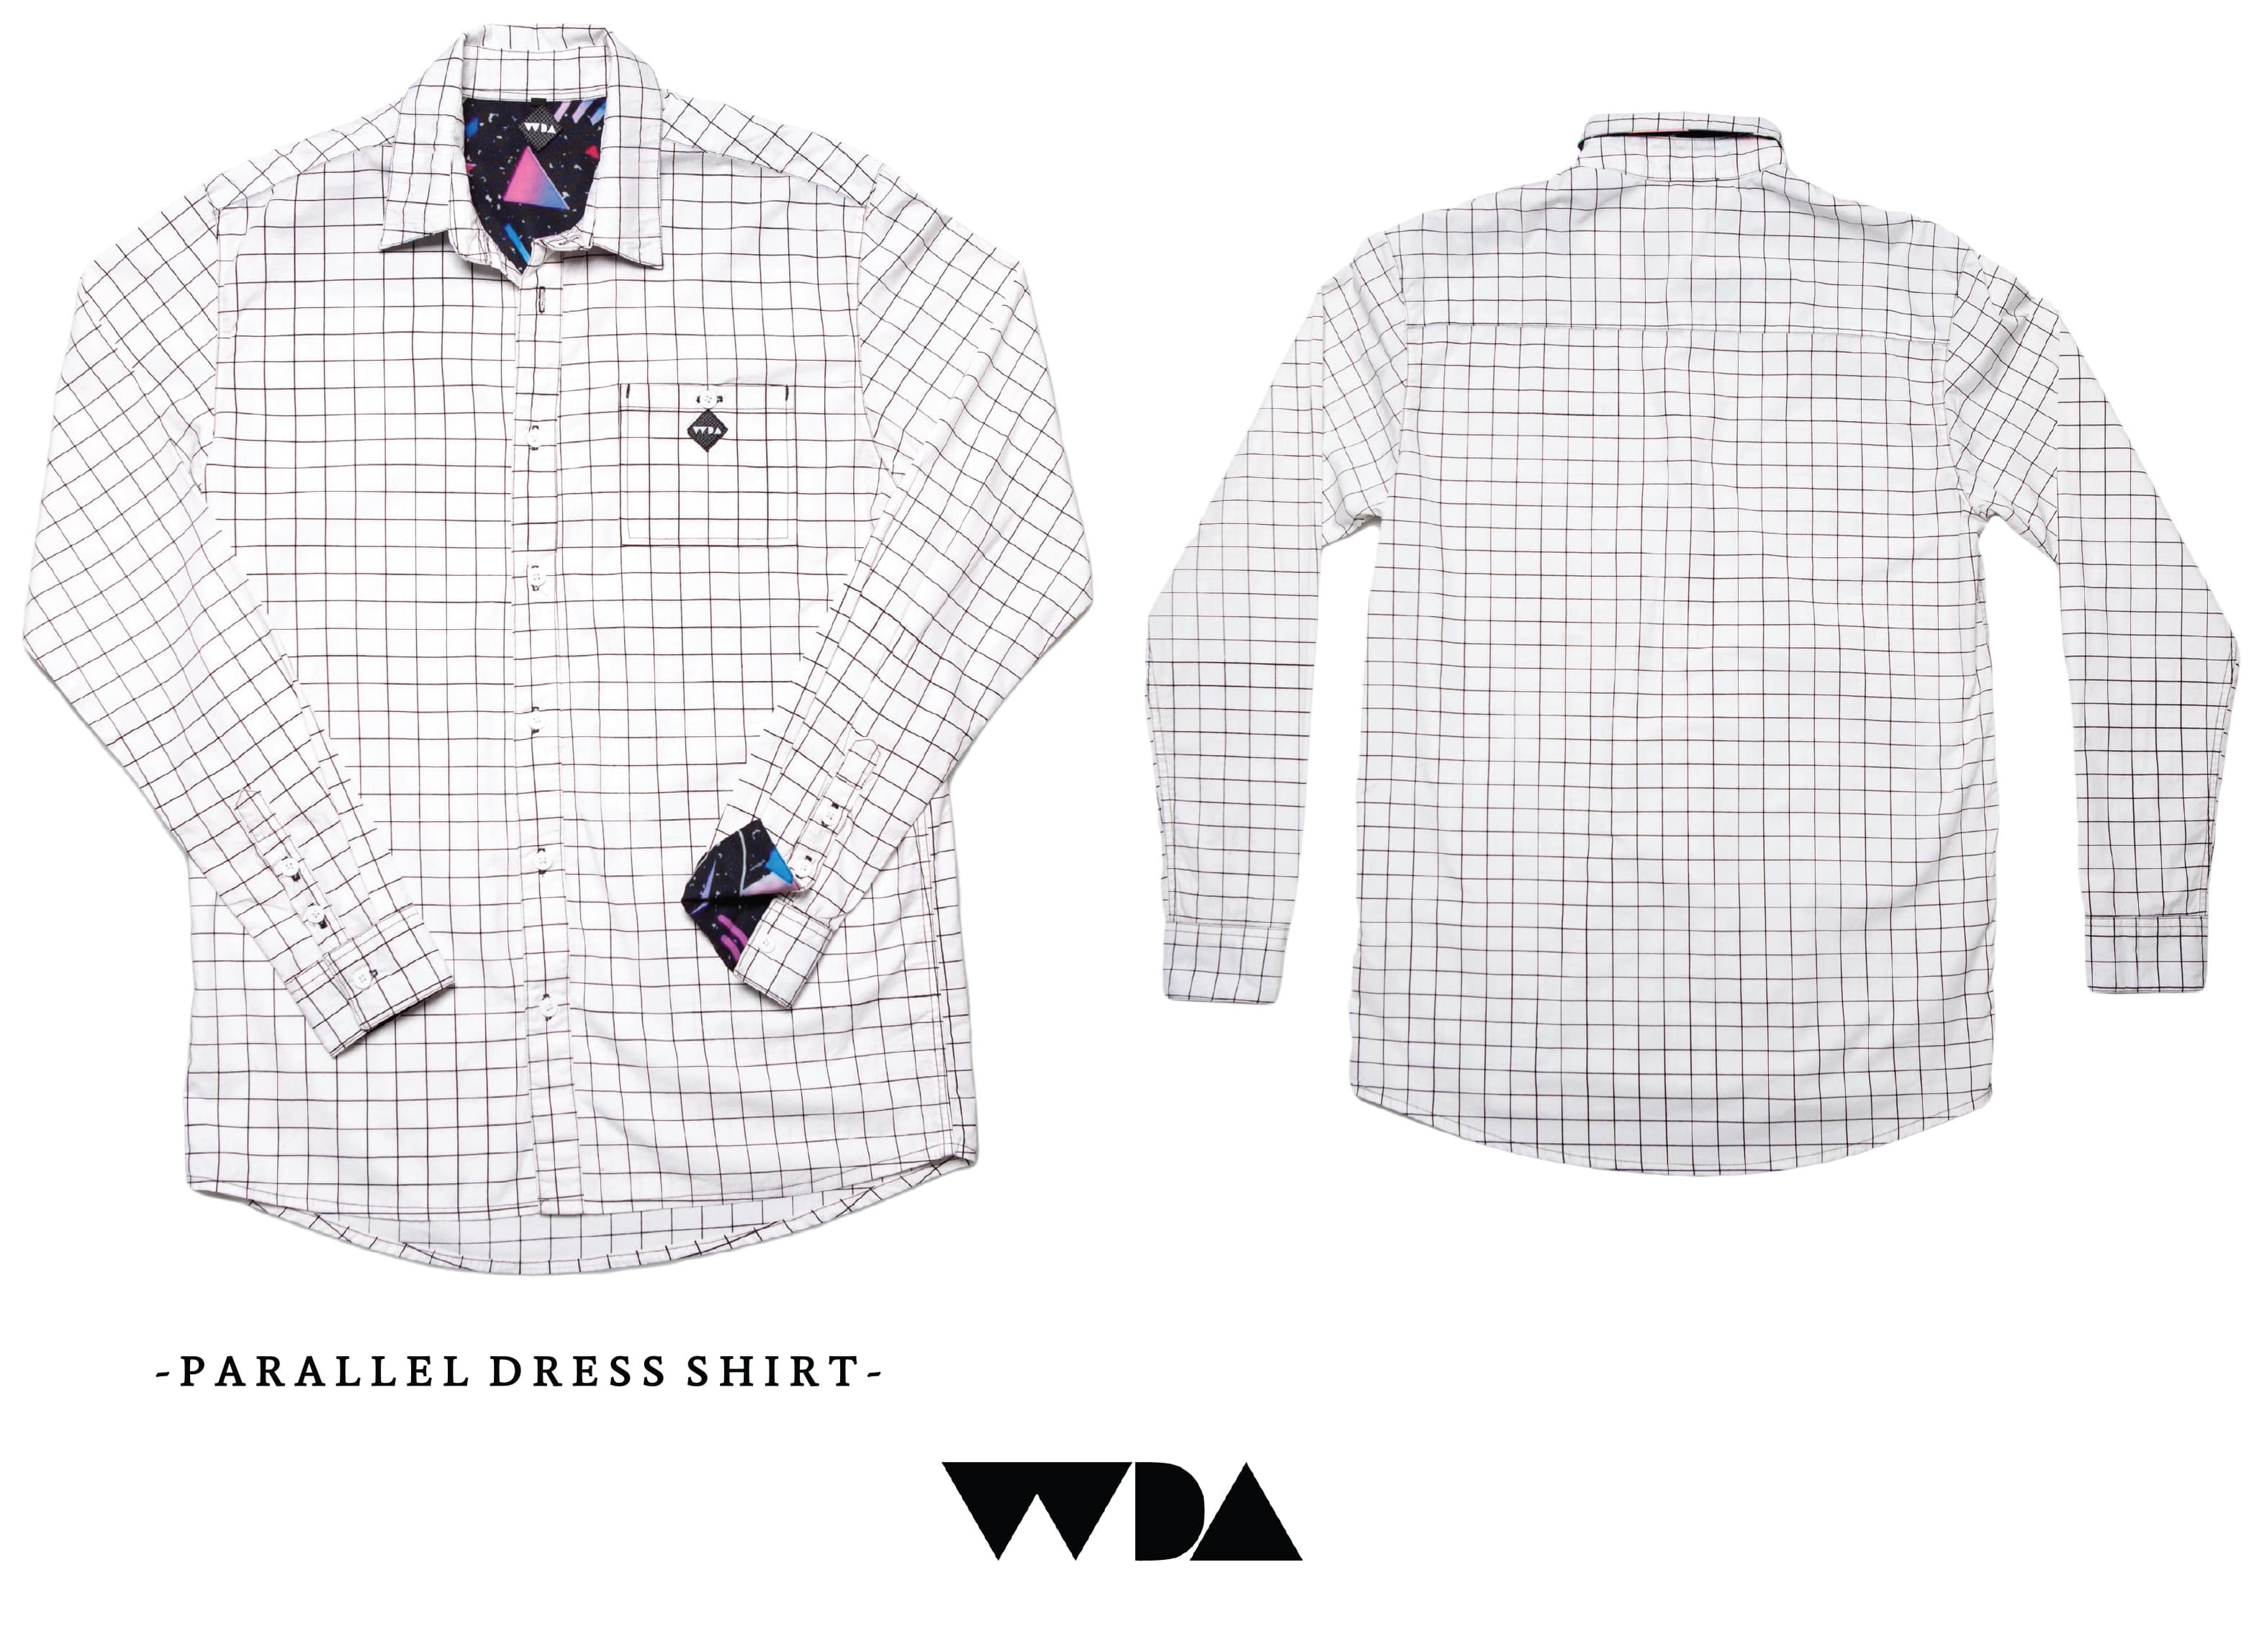 WDA, WE DREAM ALONE, CLOTHING, APPAREL, MENS, PARALLEL, SHIRT, BUTTON UP, WHITE, COLLAR, CUFF, 80S PRINT